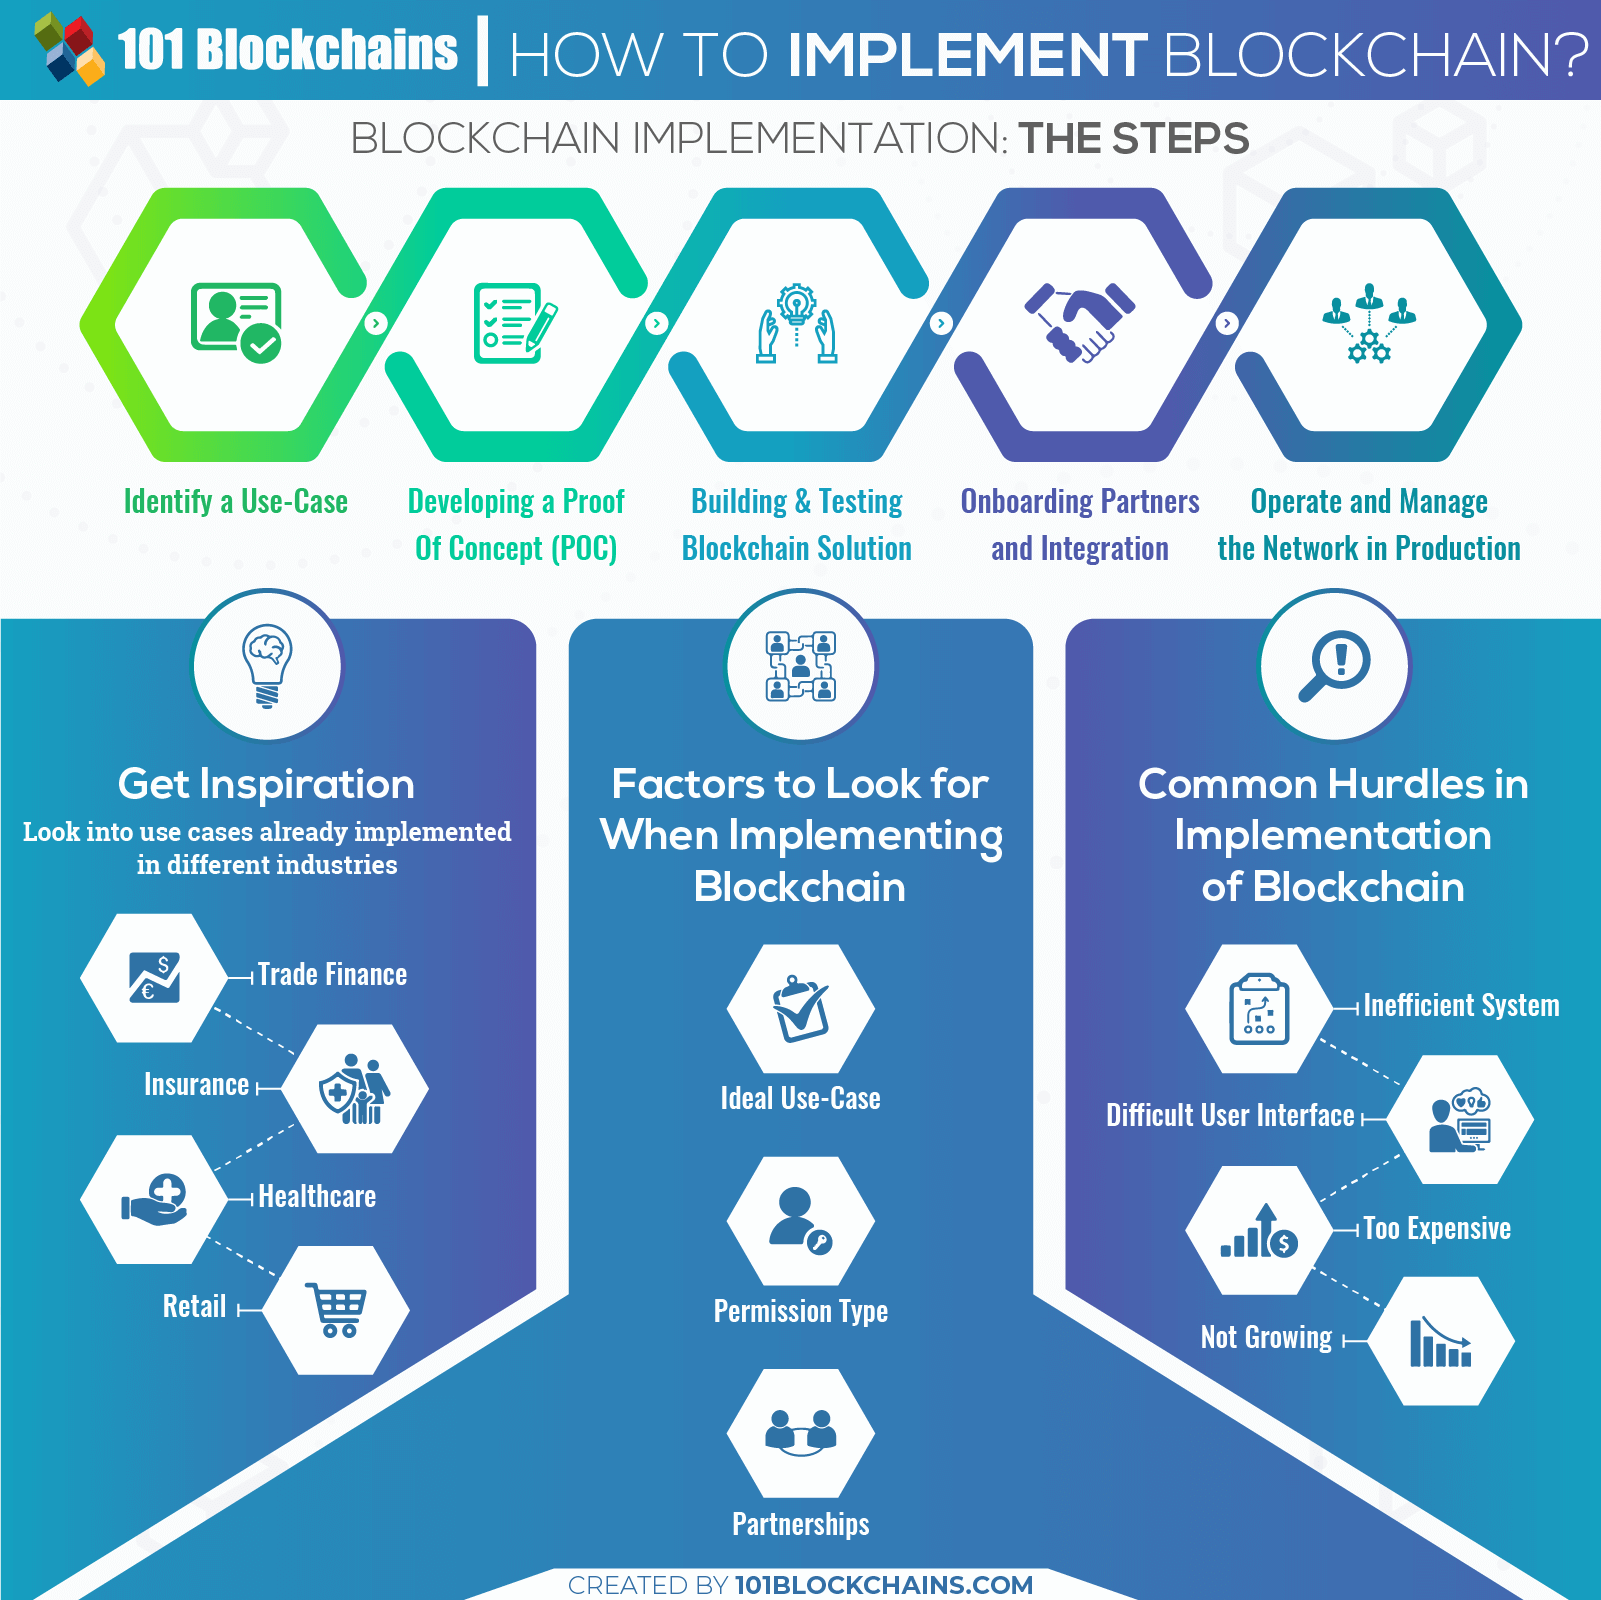 How to Implement Blockchain infographics